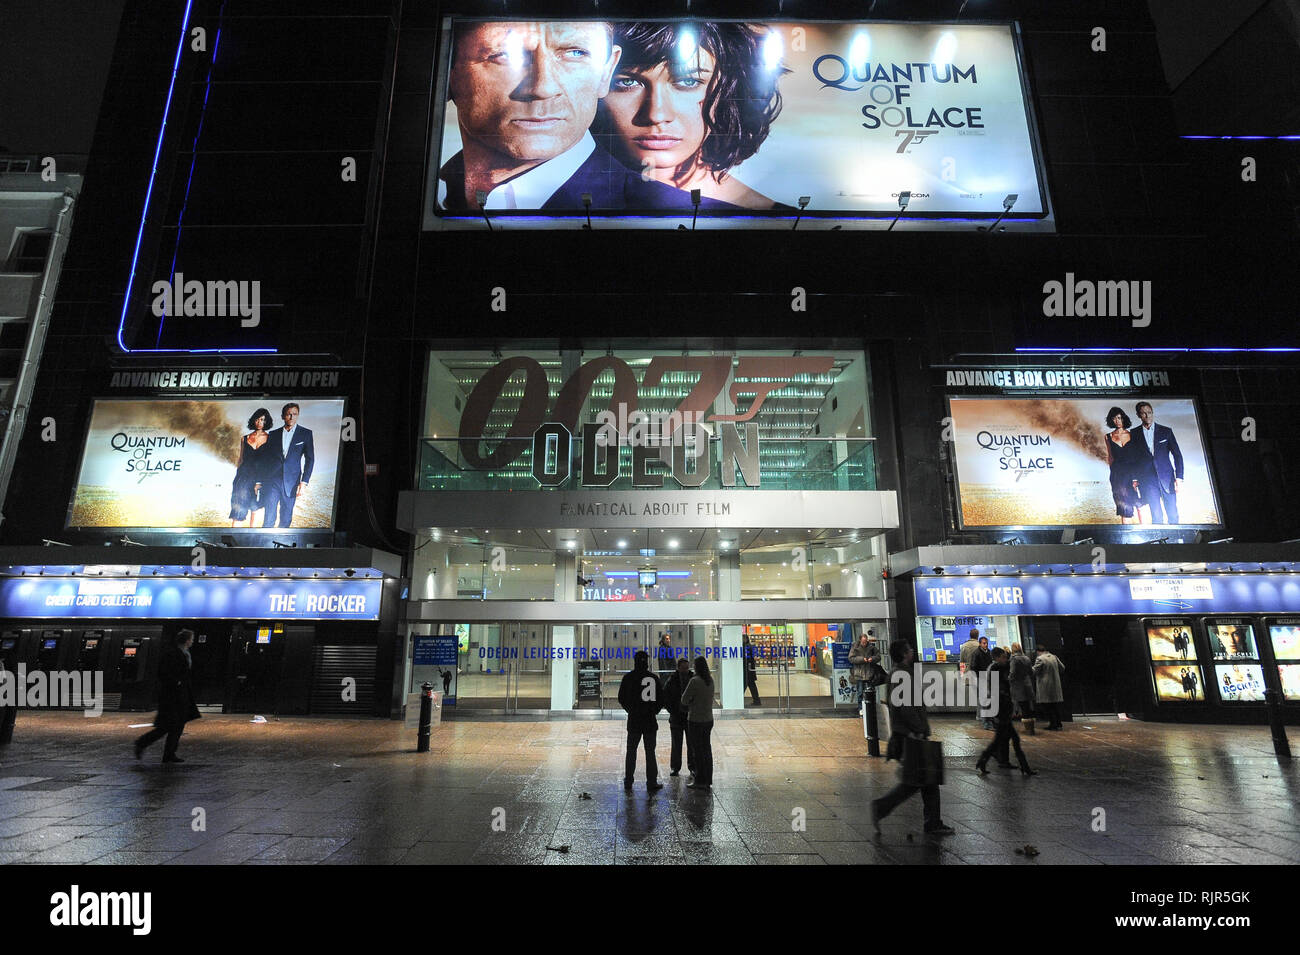 James Bond film Quantum Of Solace poster with Daniel Craig and Olga Kurylenko in Odeon Leicester Square in London, England, United Kingdom. October 28 - Stock Image